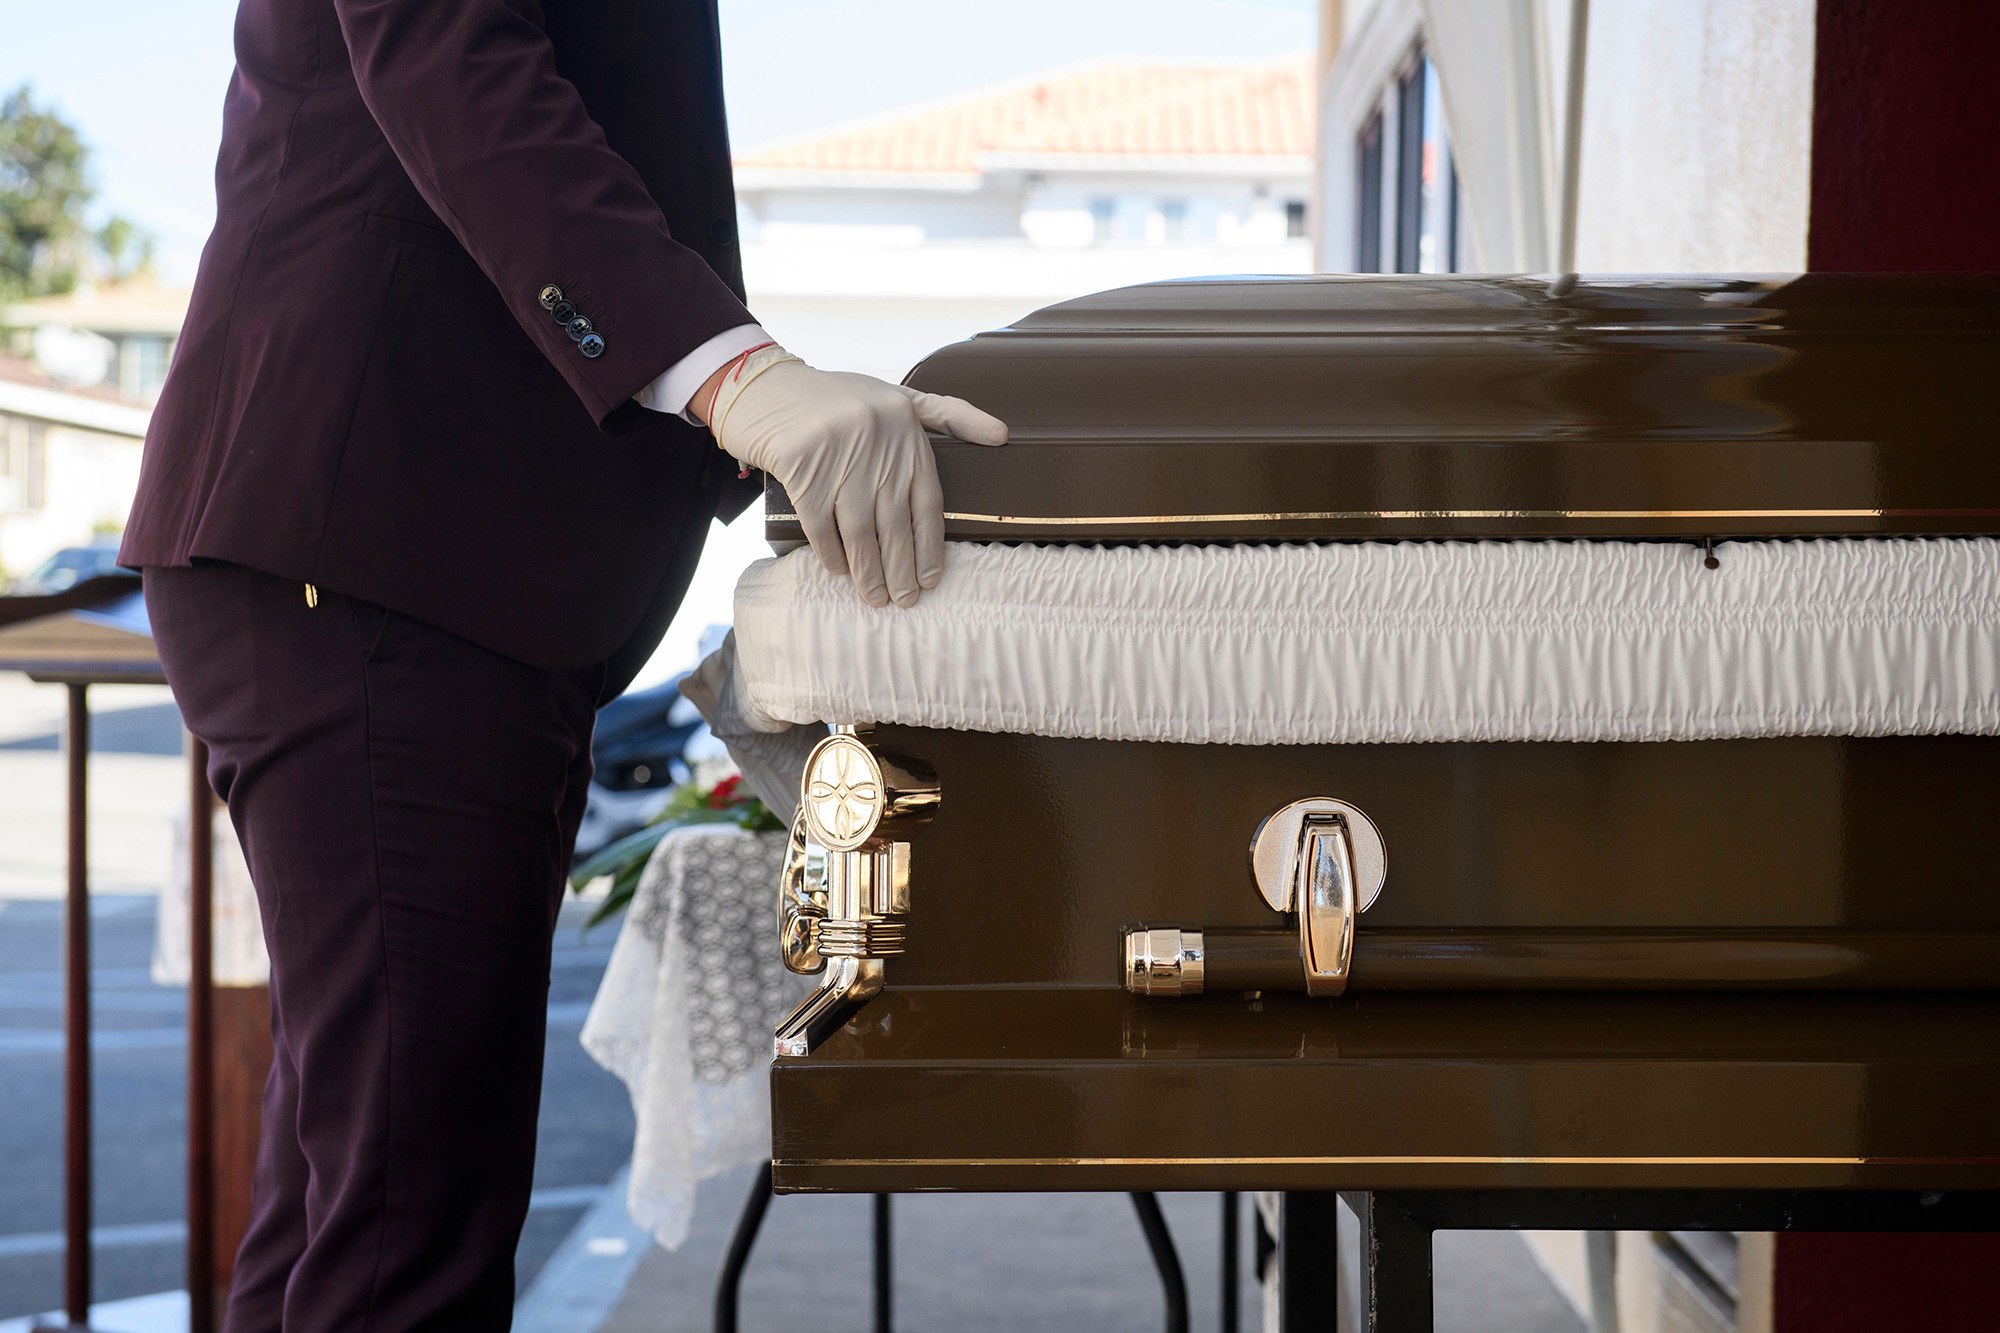 Funeral director Steven Correa moves the casket of Gilberto Arreguin Camacho, 58, in preparation for burial following his death due to Covid-19 at the Continental Funeral Home on December 31, in Los Angeles, California.